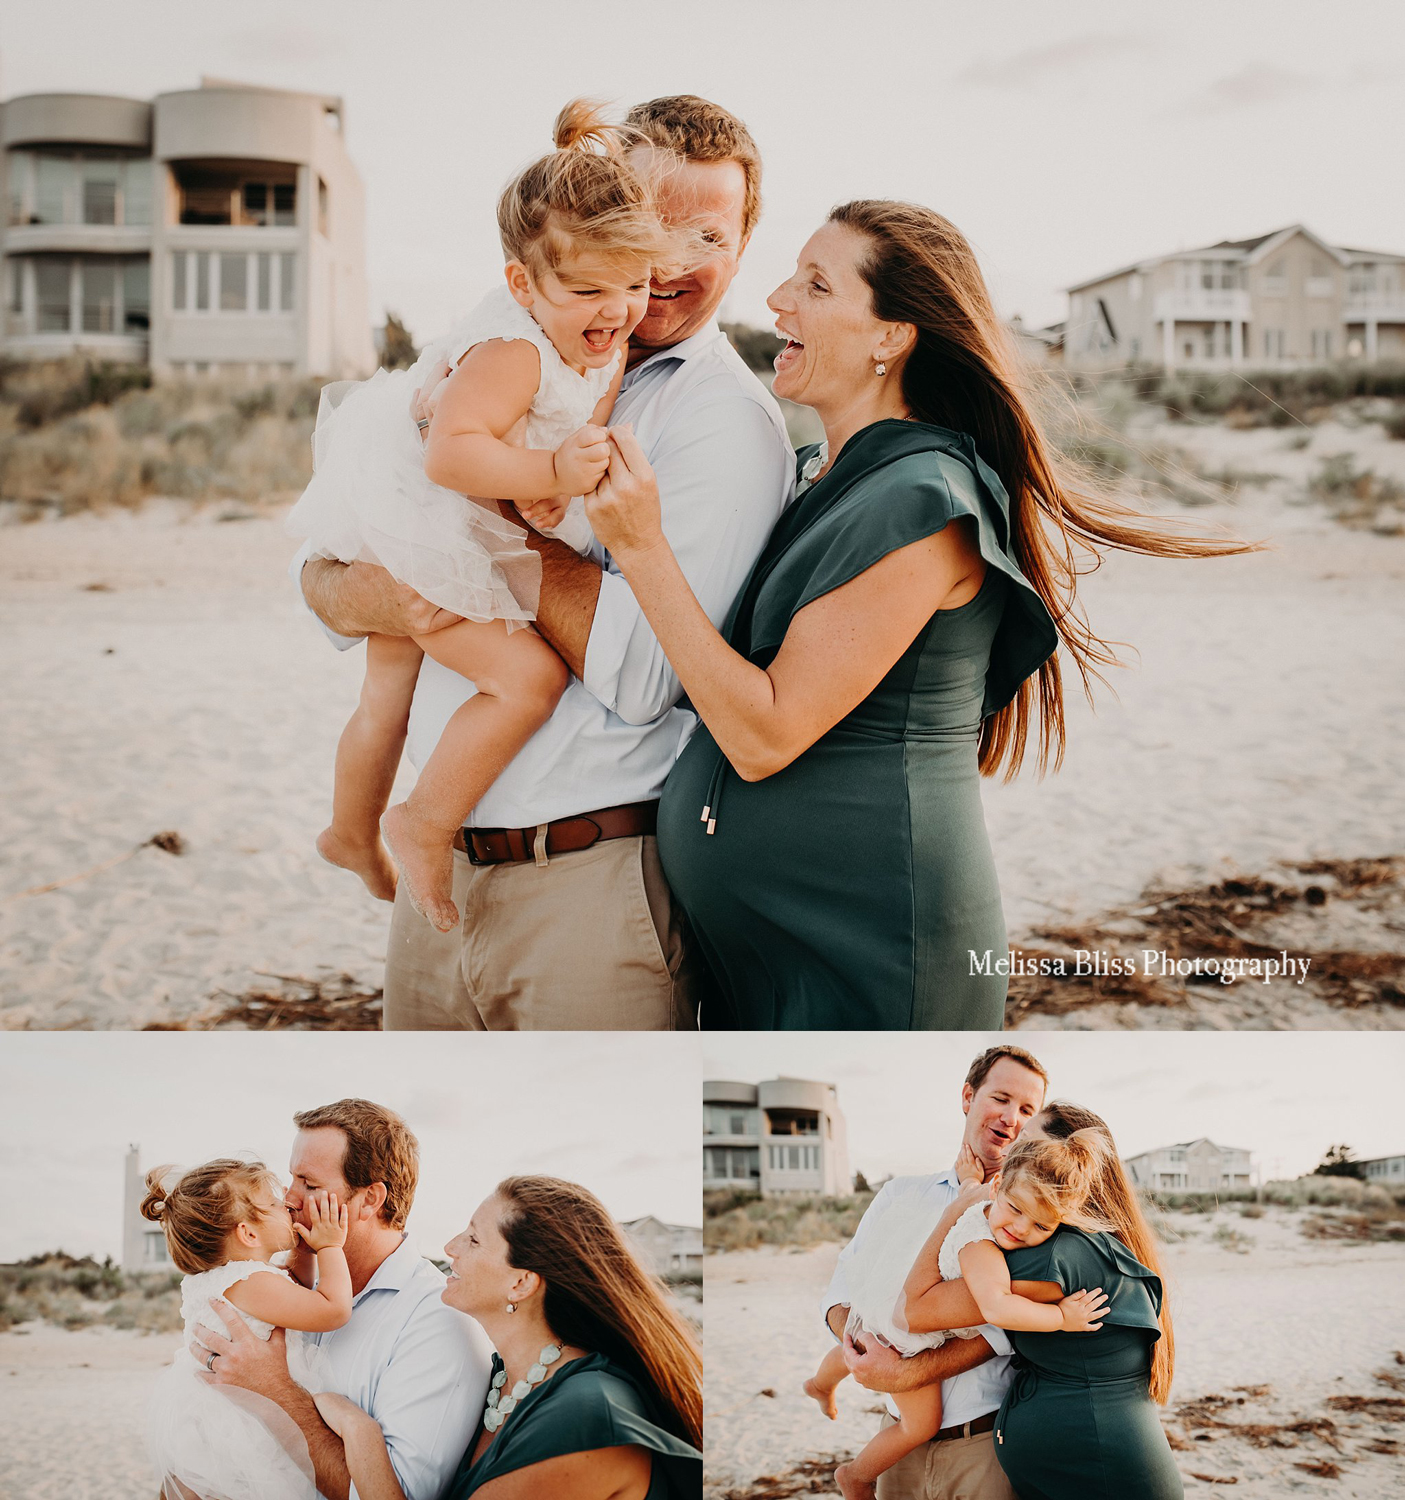 sweet-family-moments-captured-at-chicks-beach-by-melissa-bliss-photography-virginia-beach-family-photographer.jpg